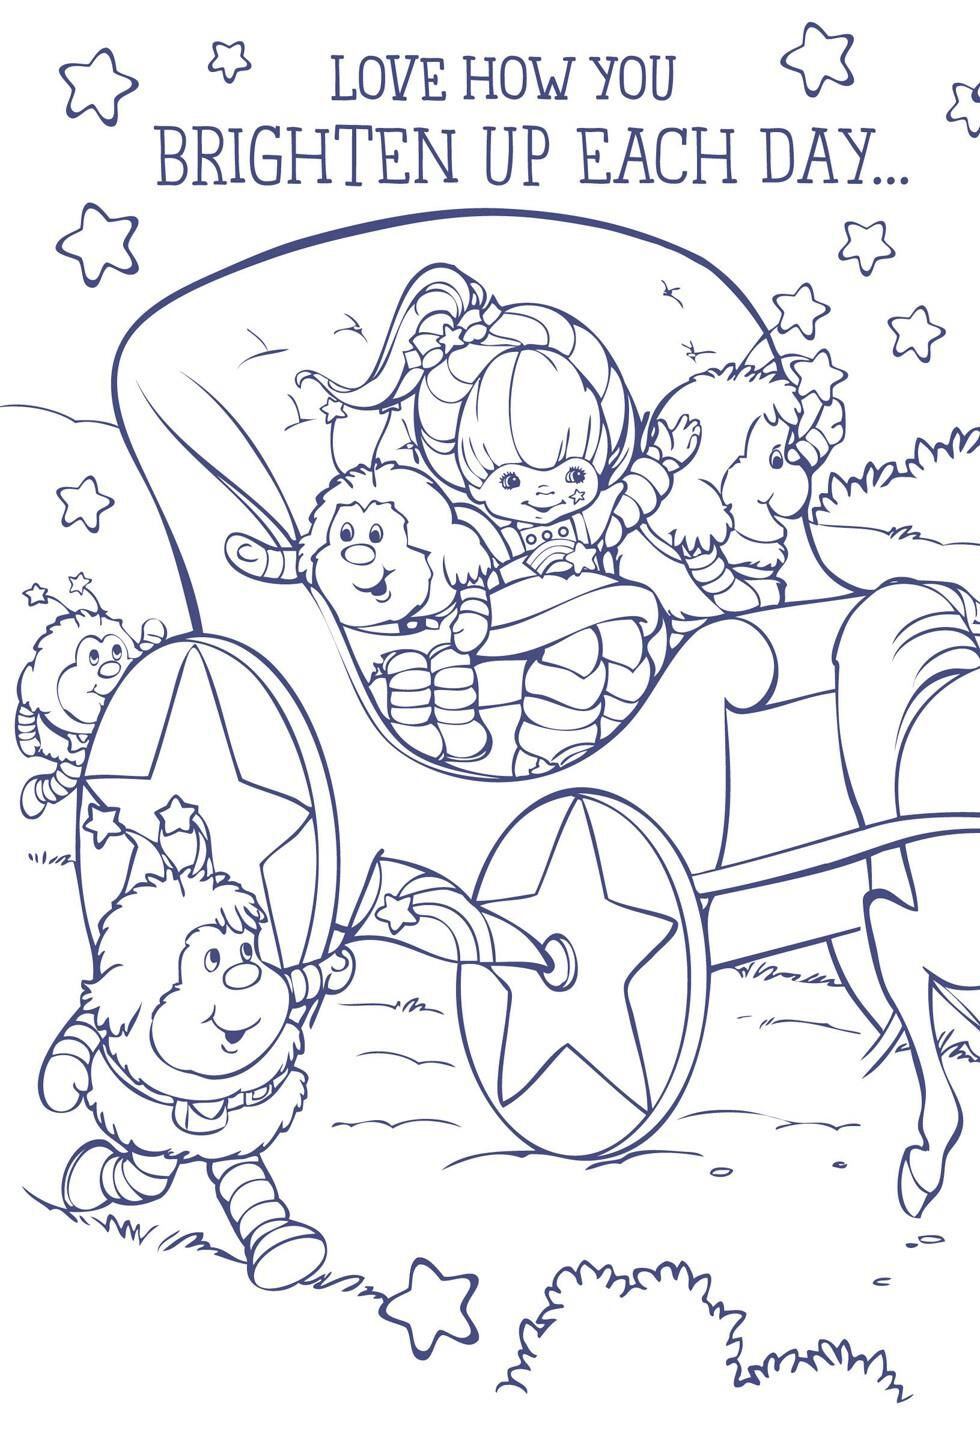 Rainbow brite characters coloring pages - Rainbow Brite Characters Coloring Pages 16